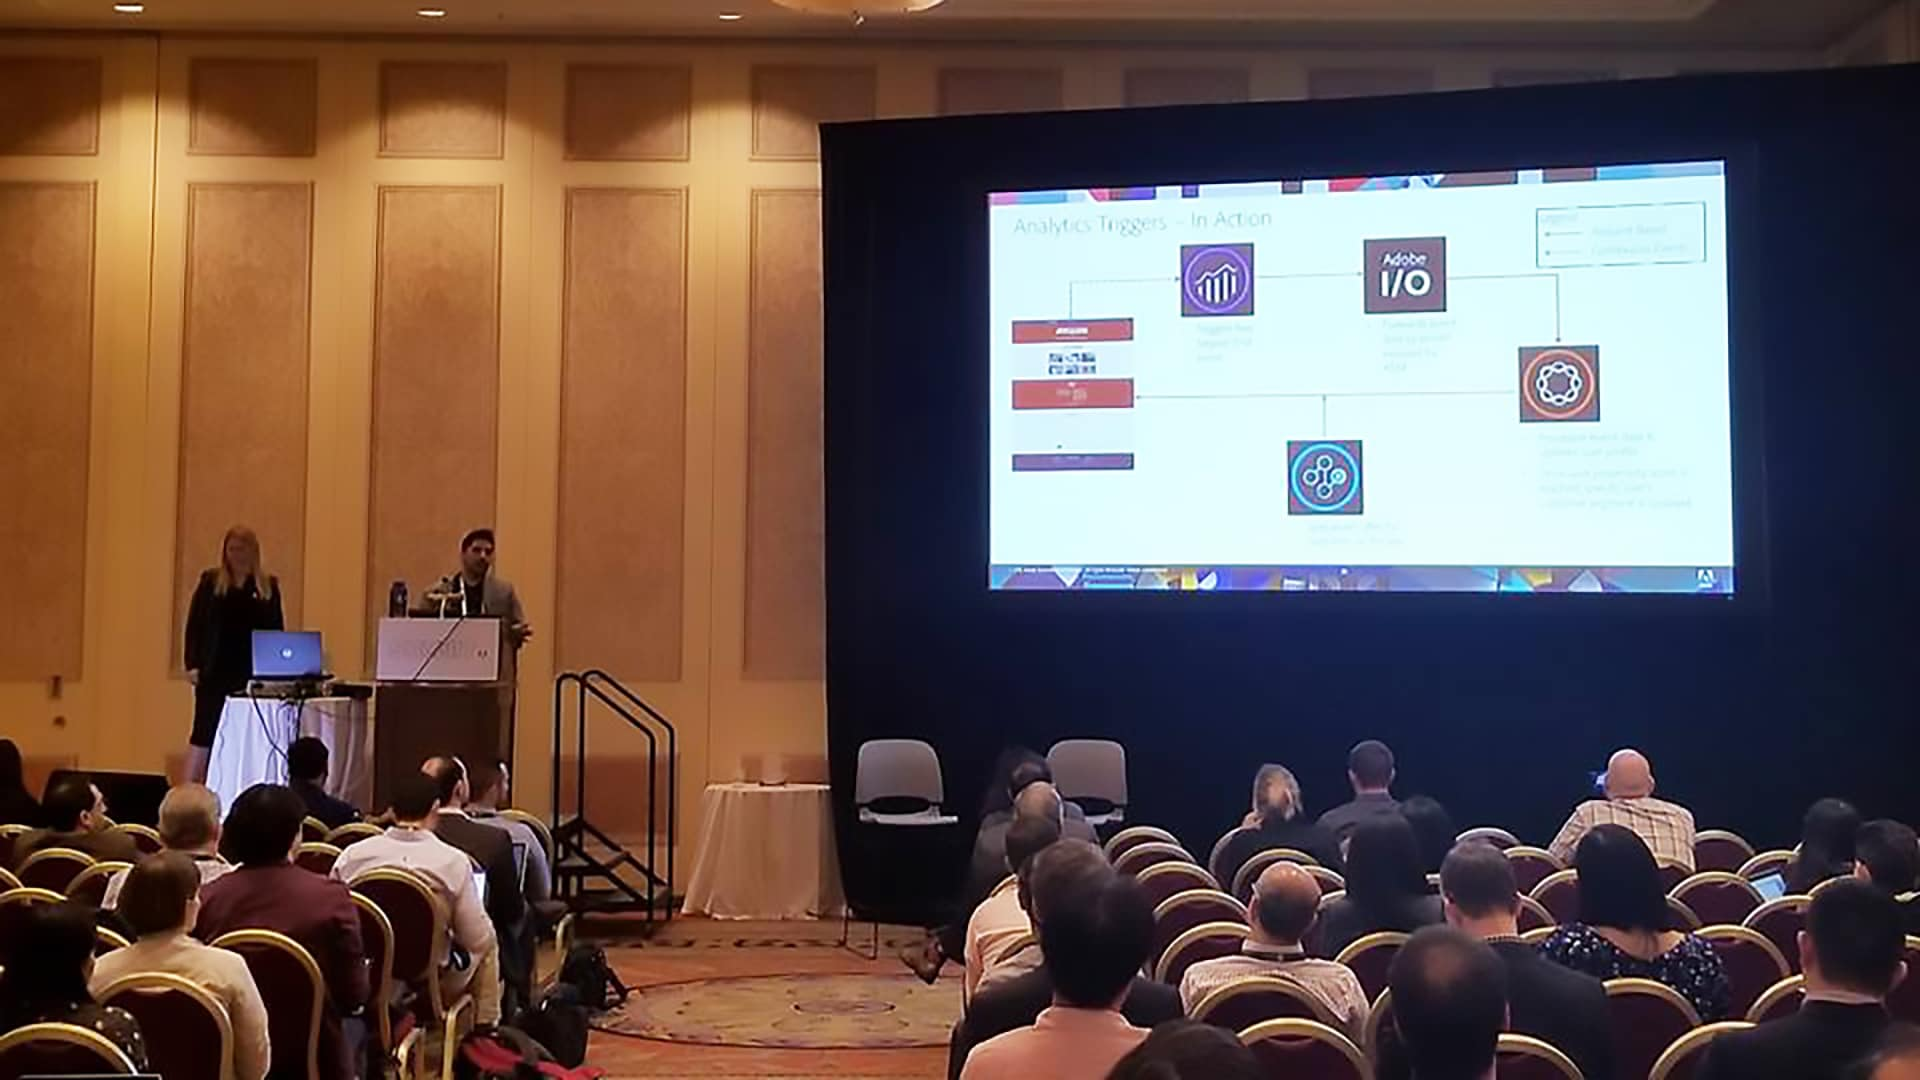 Runal Trivedi, specialist master, Deloitte Digital, joined Adobe's Carmen Sutter, senior product manger and Sarah Xu, developer evangelist, to talk about how to accelerate your mobile and web experiences using Adobe I/O